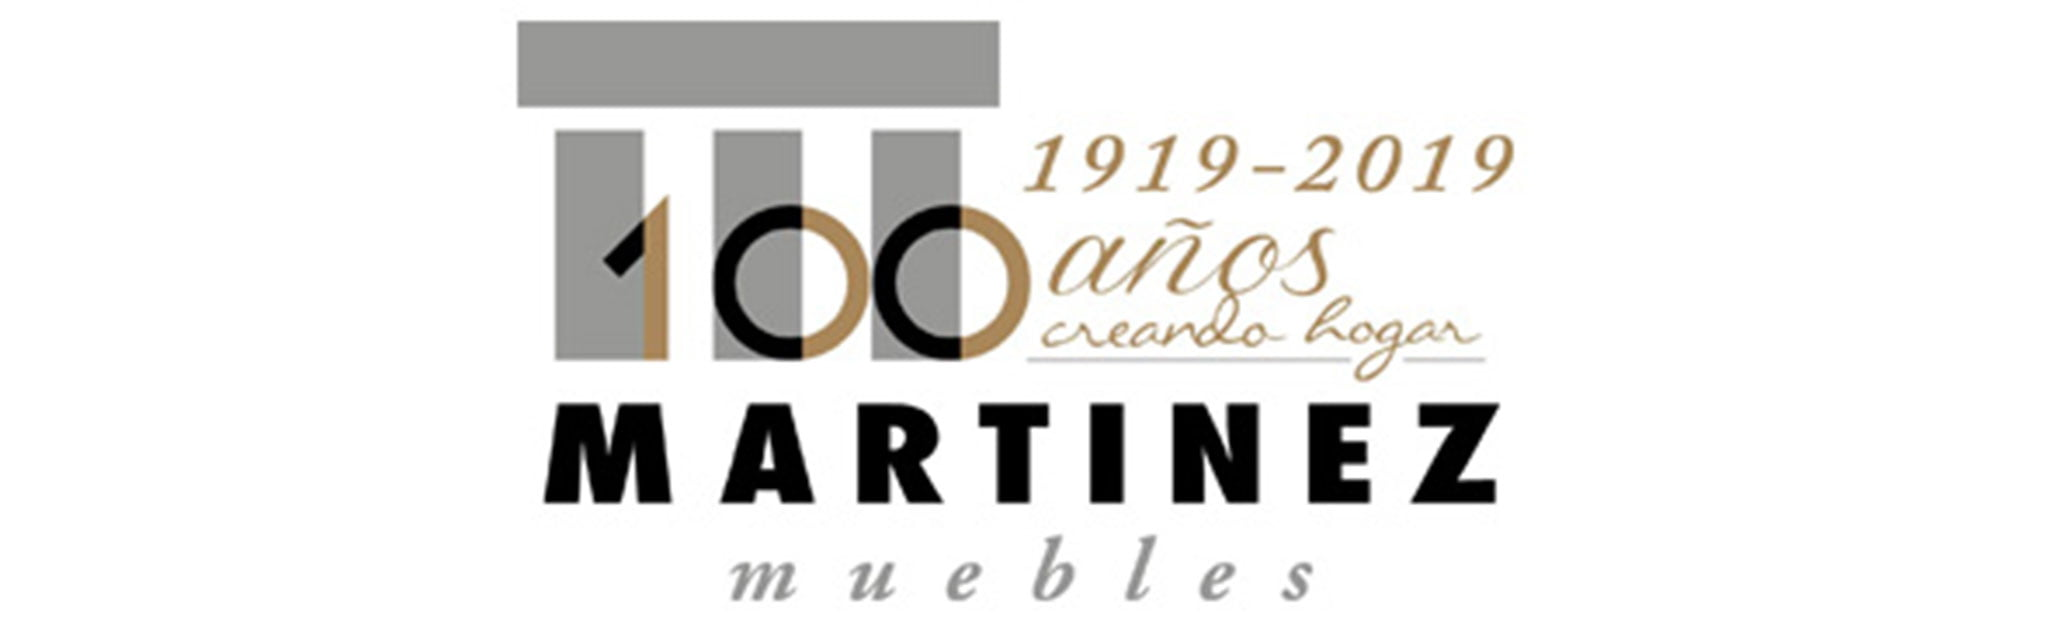 Martínez Furniture logo